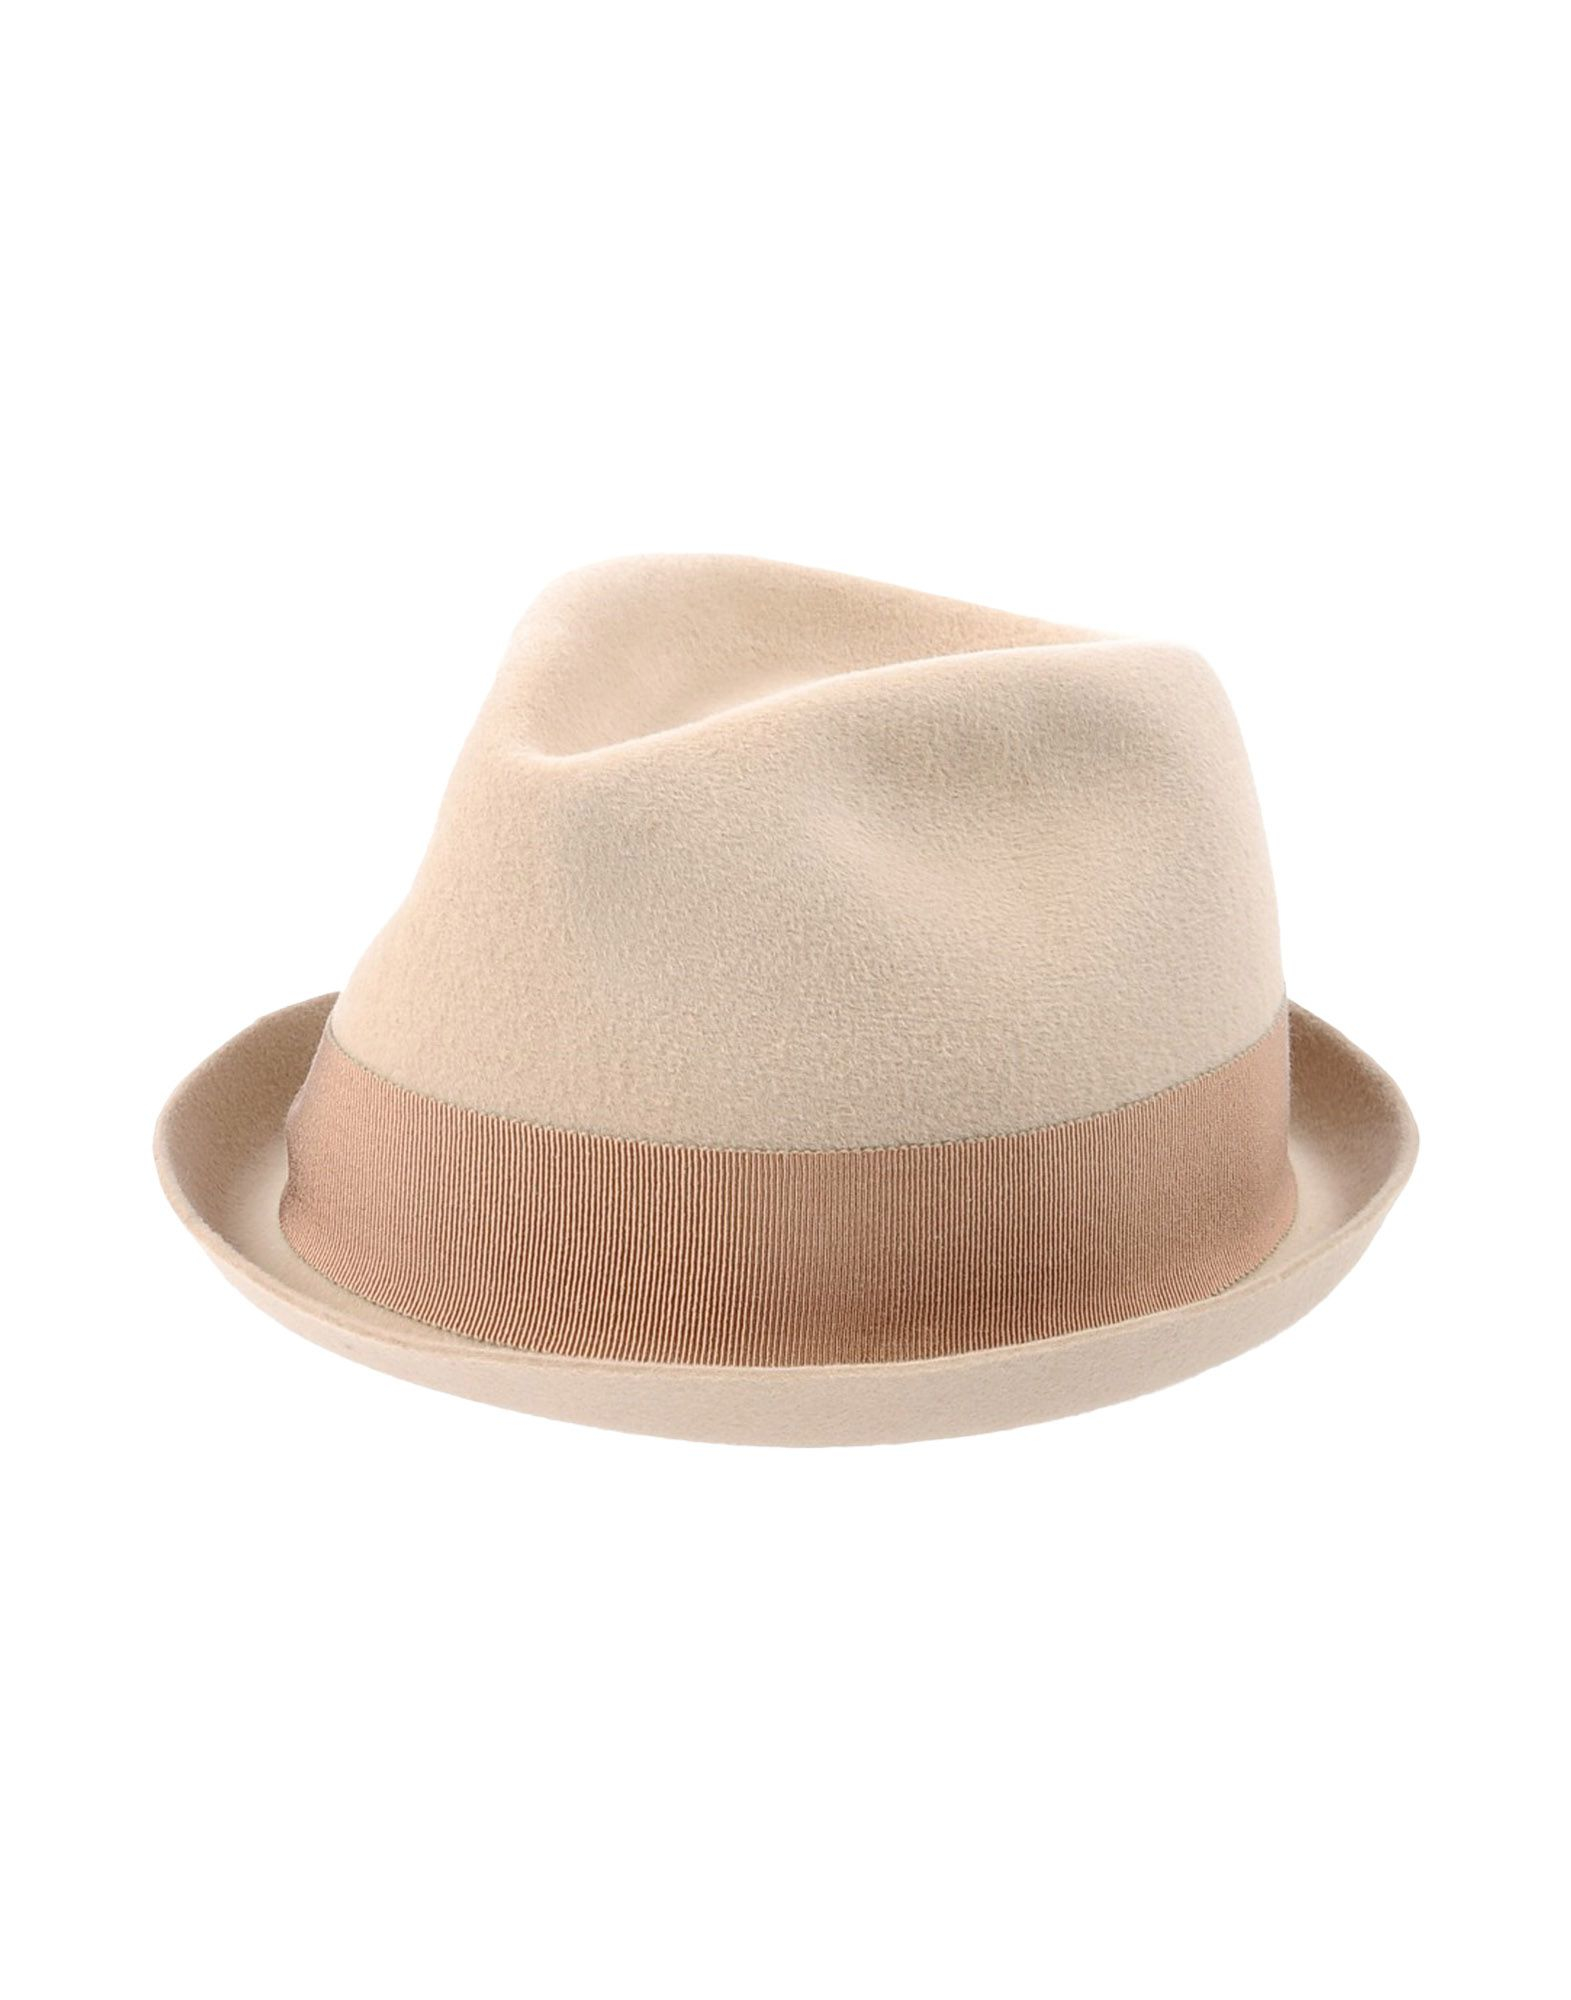 16f0bf9103b Dsquared² Hat in Natural for Men - Lyst